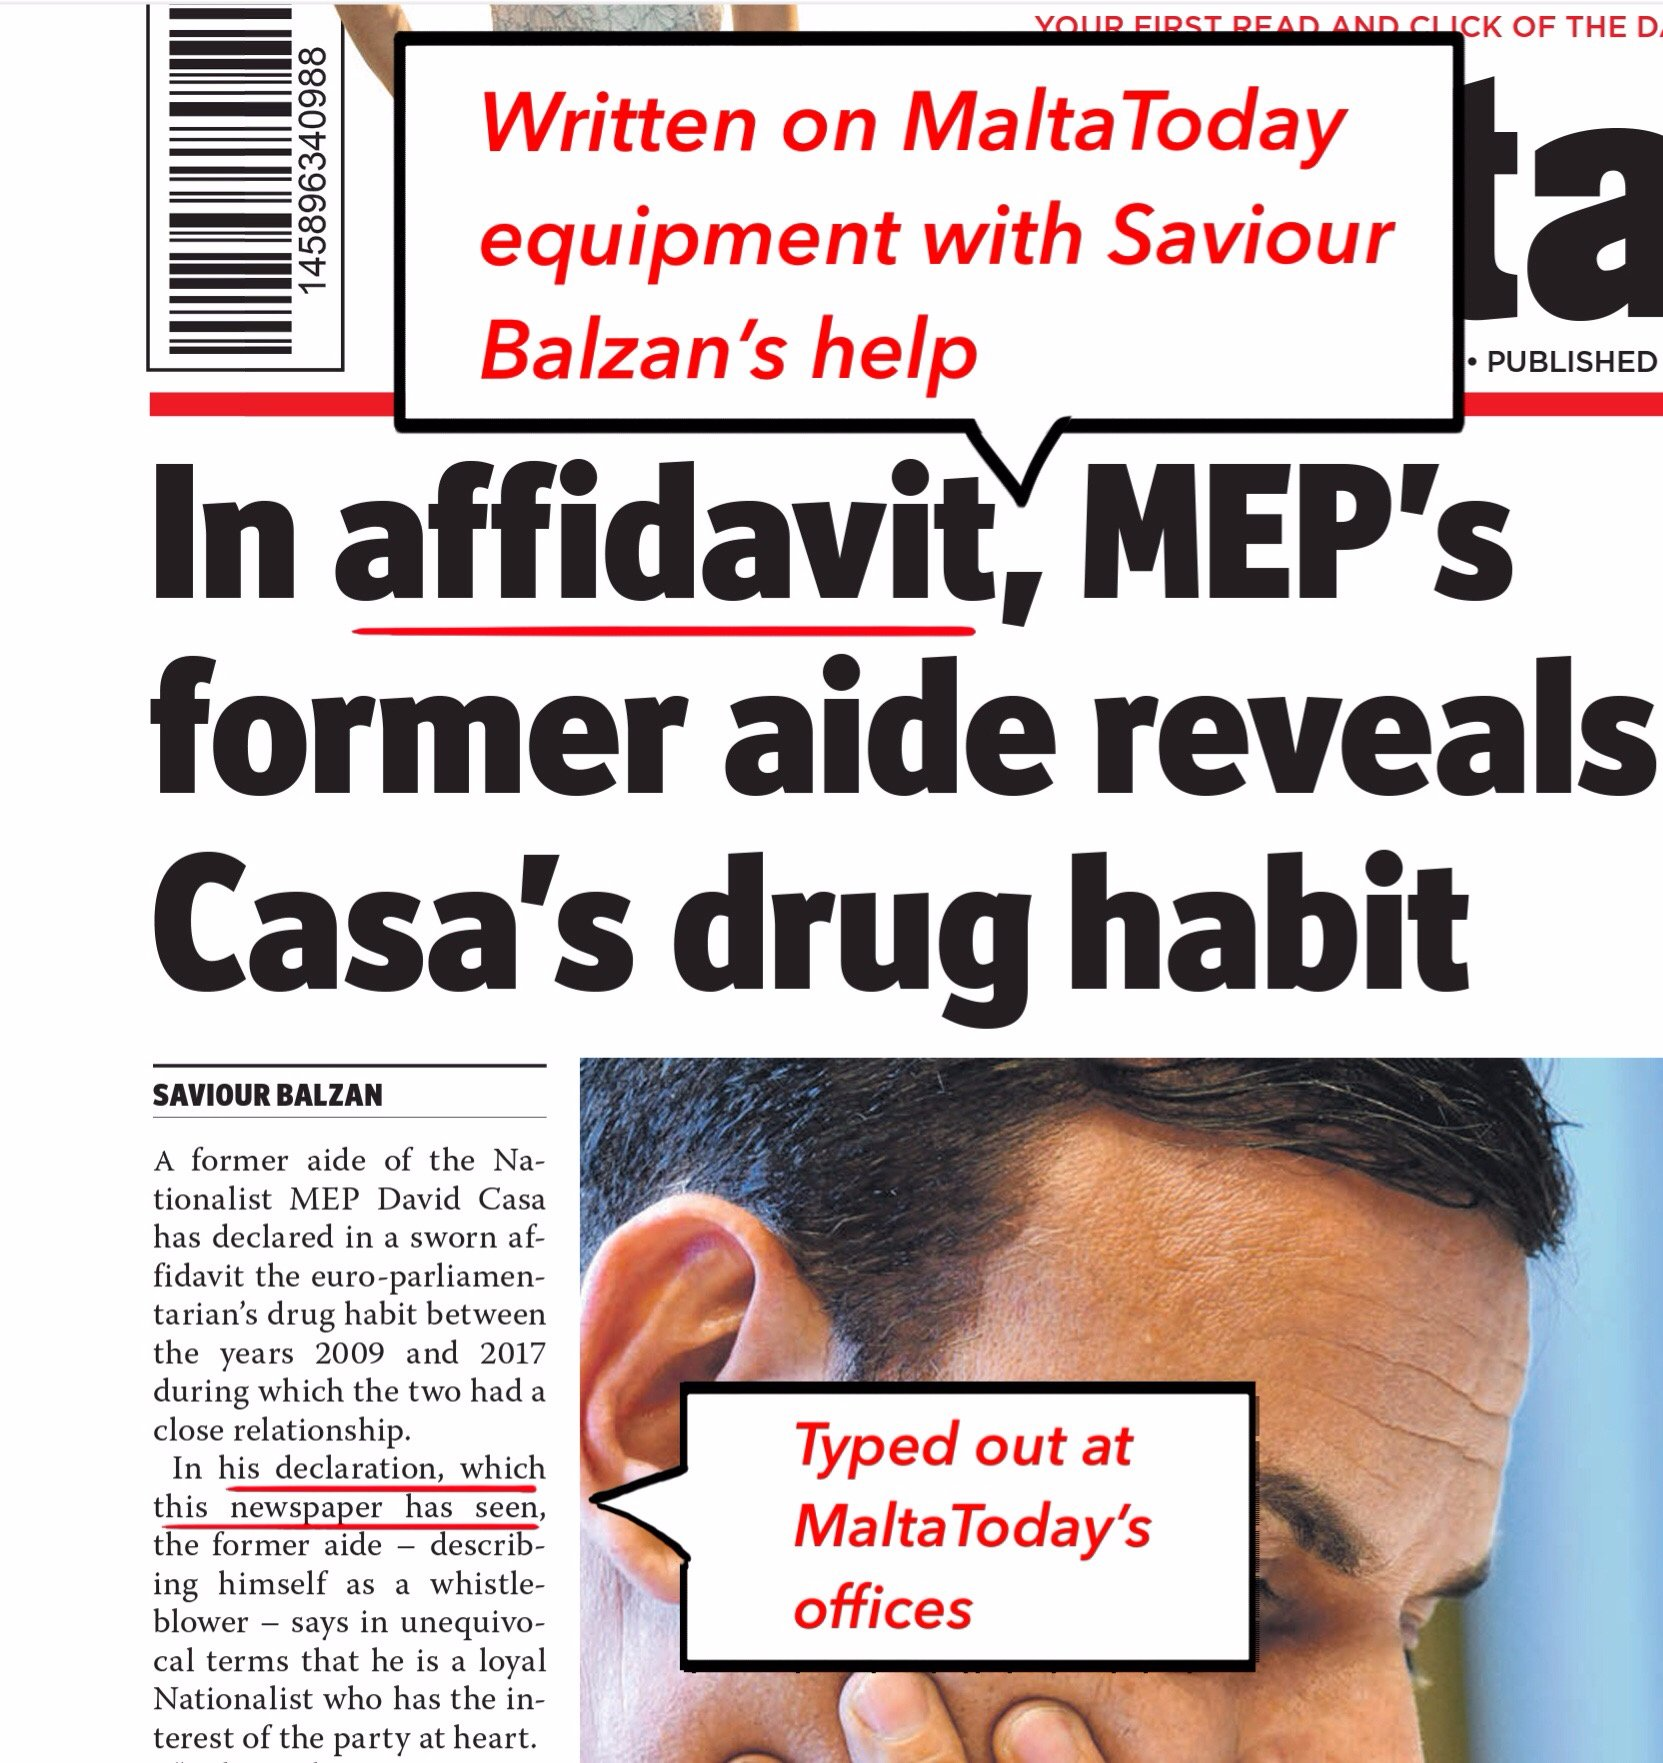 saviour balzan manufactured evidence